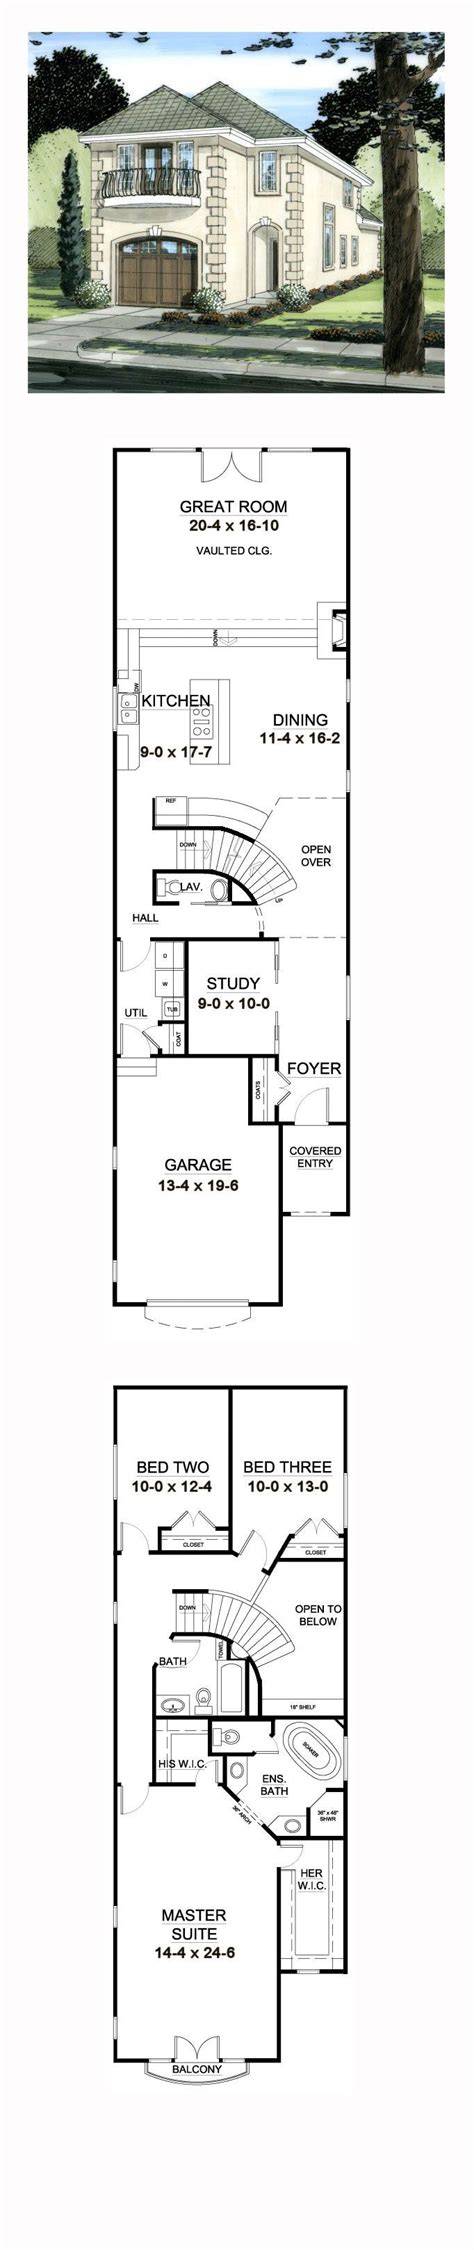 House Plans Narrow Lots by Florida House Plan 99997 Narrow Lot House Plans And Bedrooms